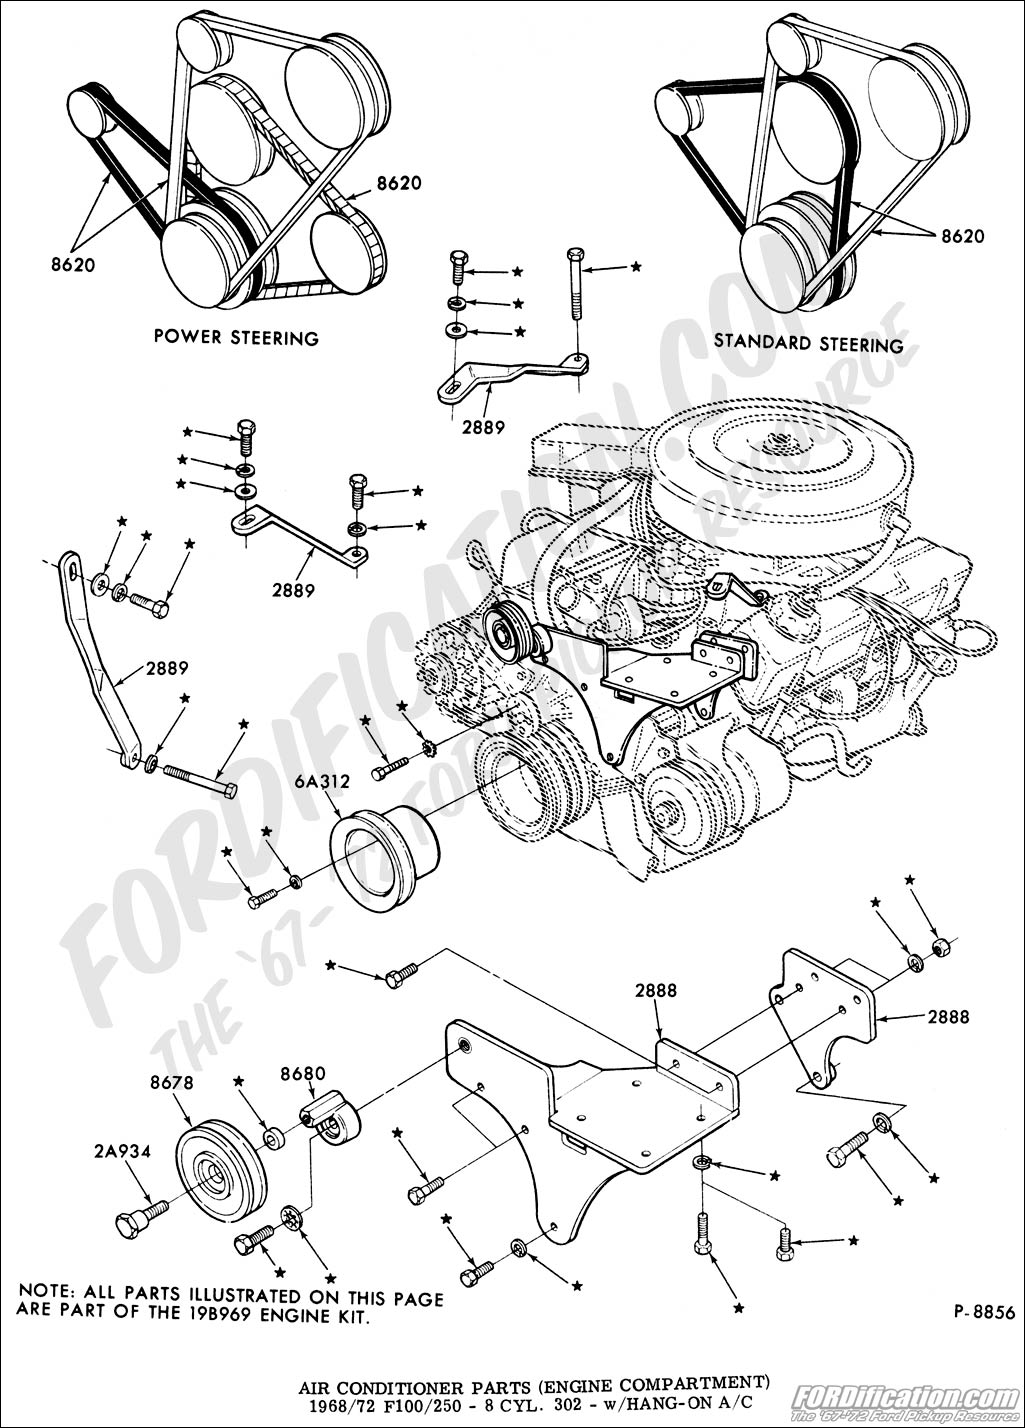 Ford F100 Engine Diagram Wiring Portal 1955 Specifications Truck Technical Drawings And Schematics Section F Heating Rh Fordification Com 1967